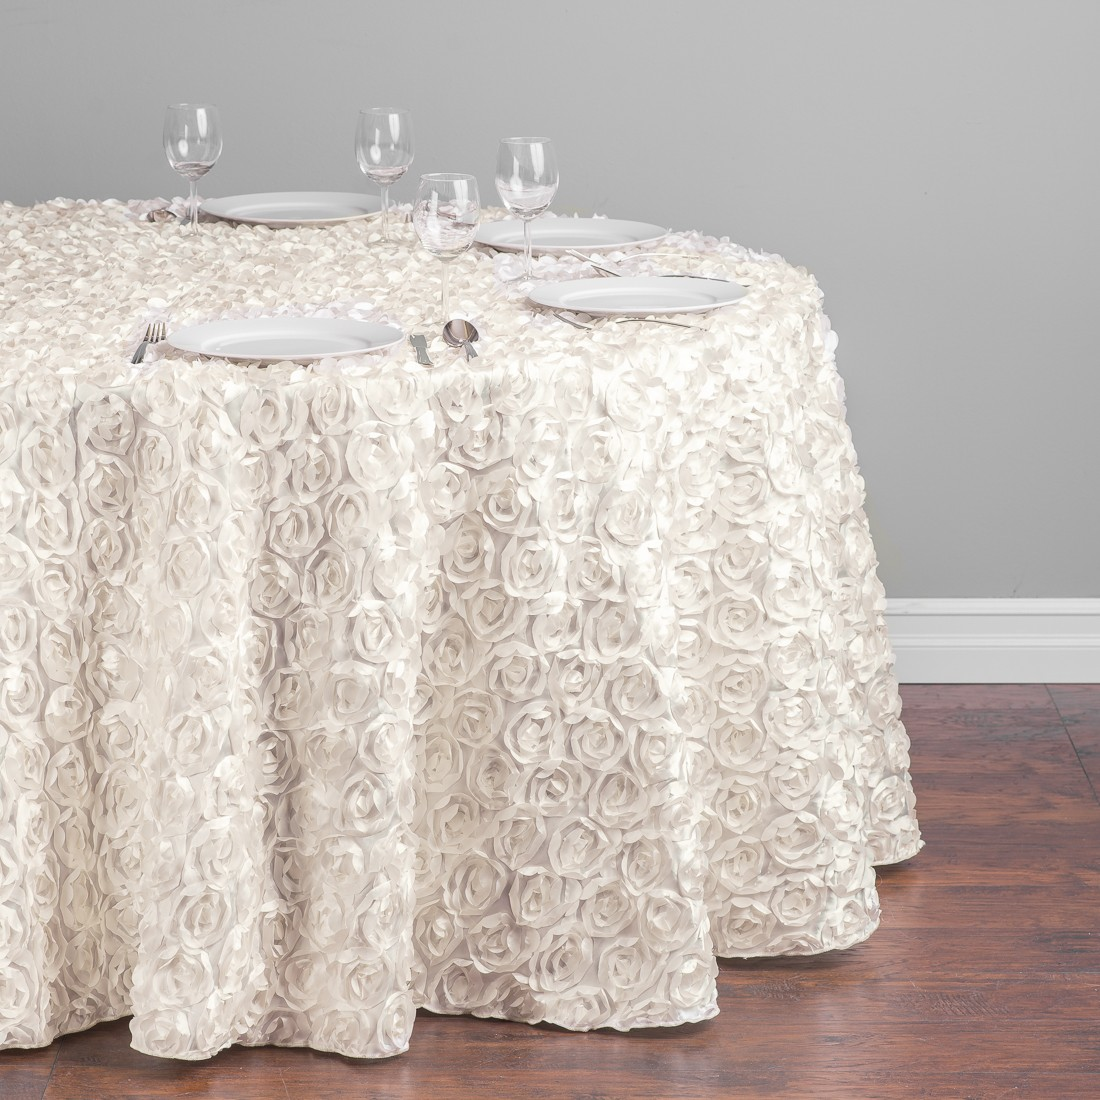 Wedding Linen: Party And Wedding Rentals For Denton And